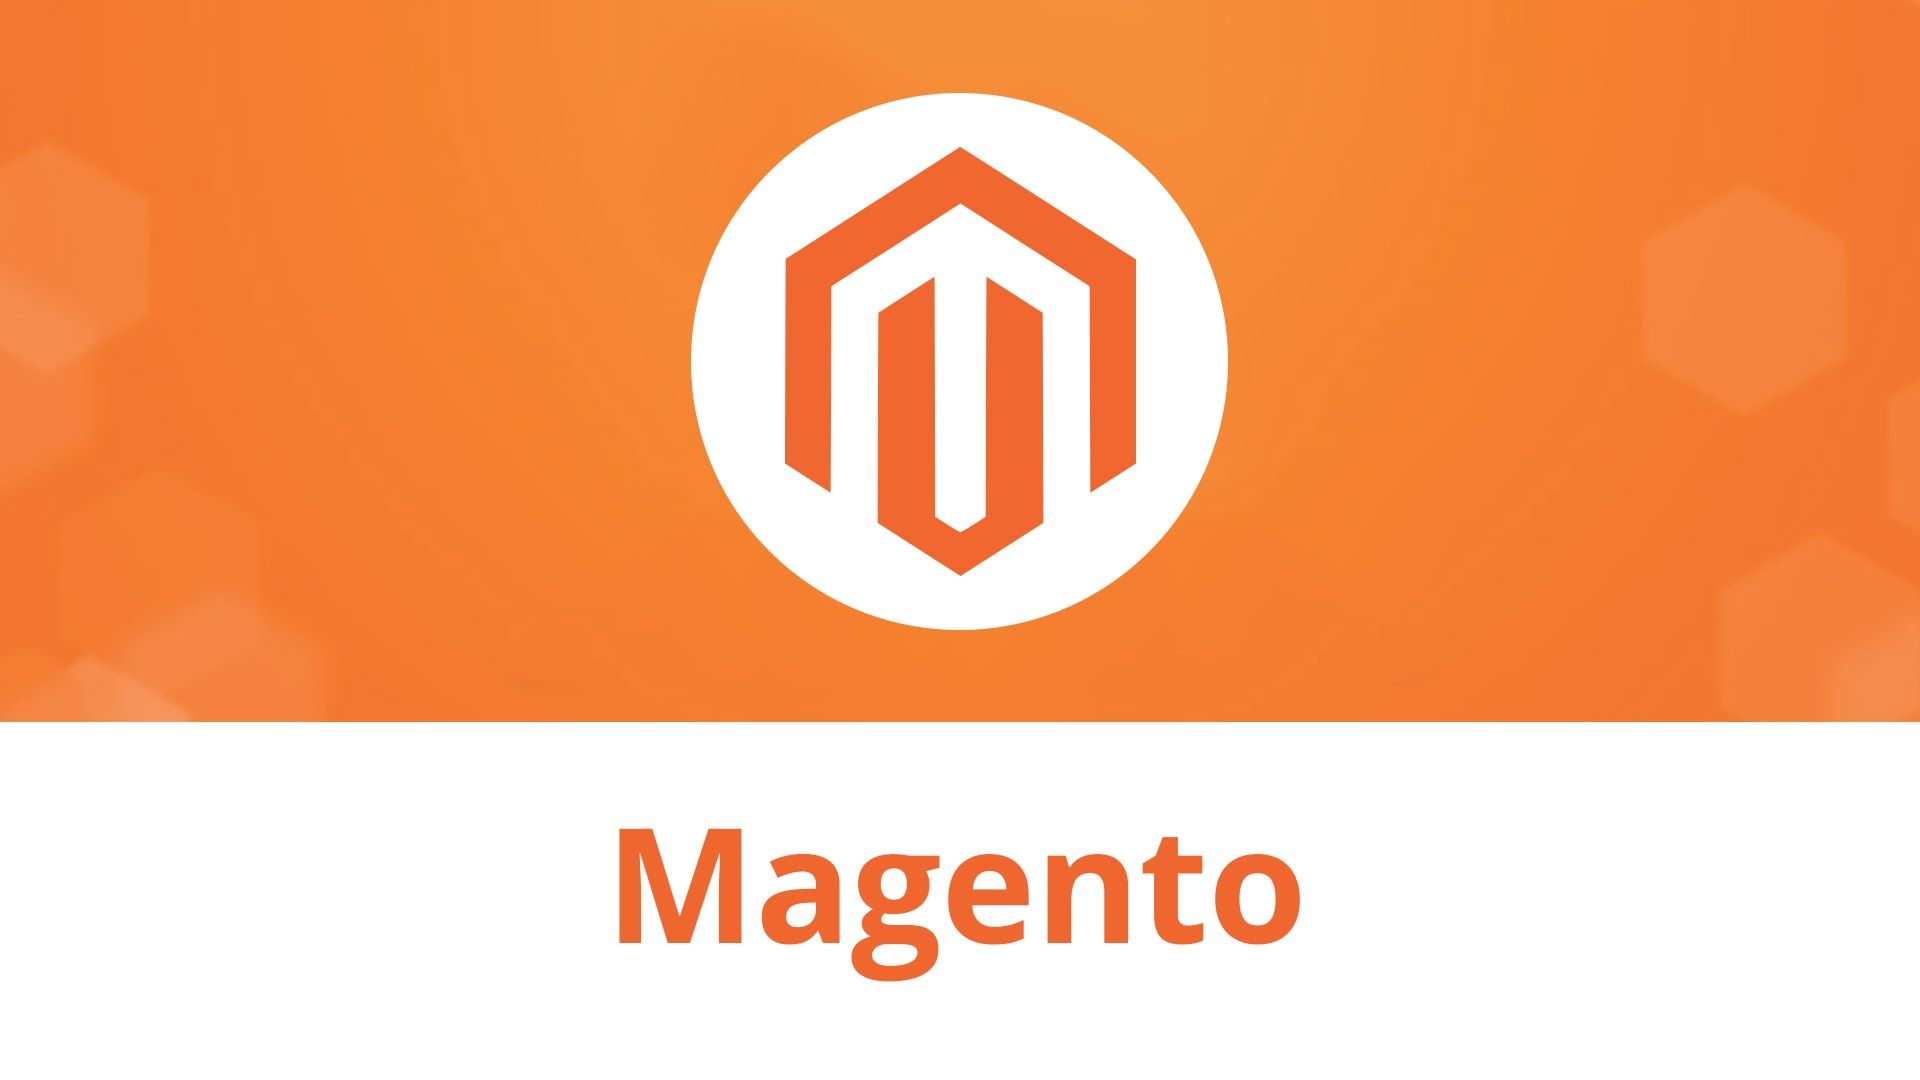 Magento plugs XSS holes that can lead to e-store hijacking,